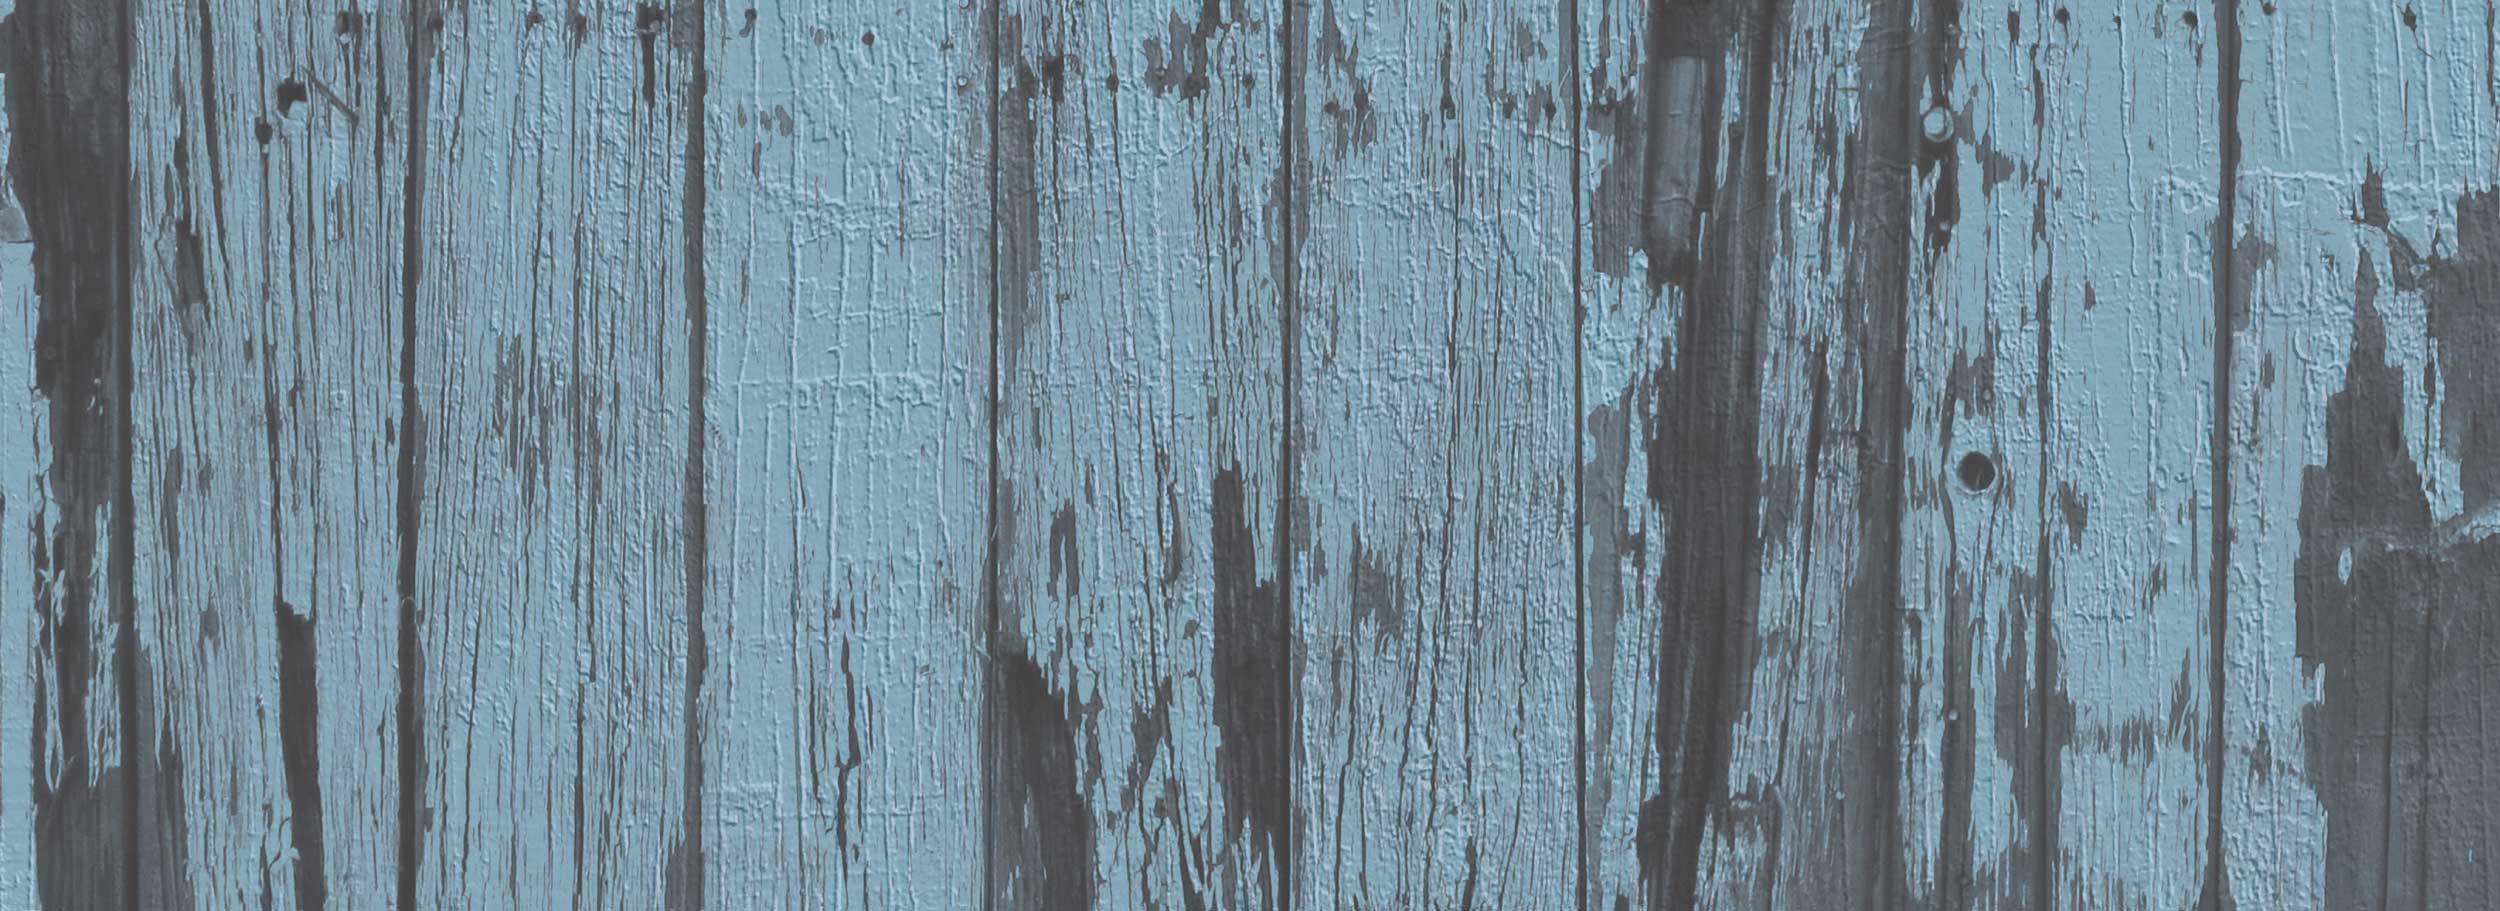 slide_wood_bg5